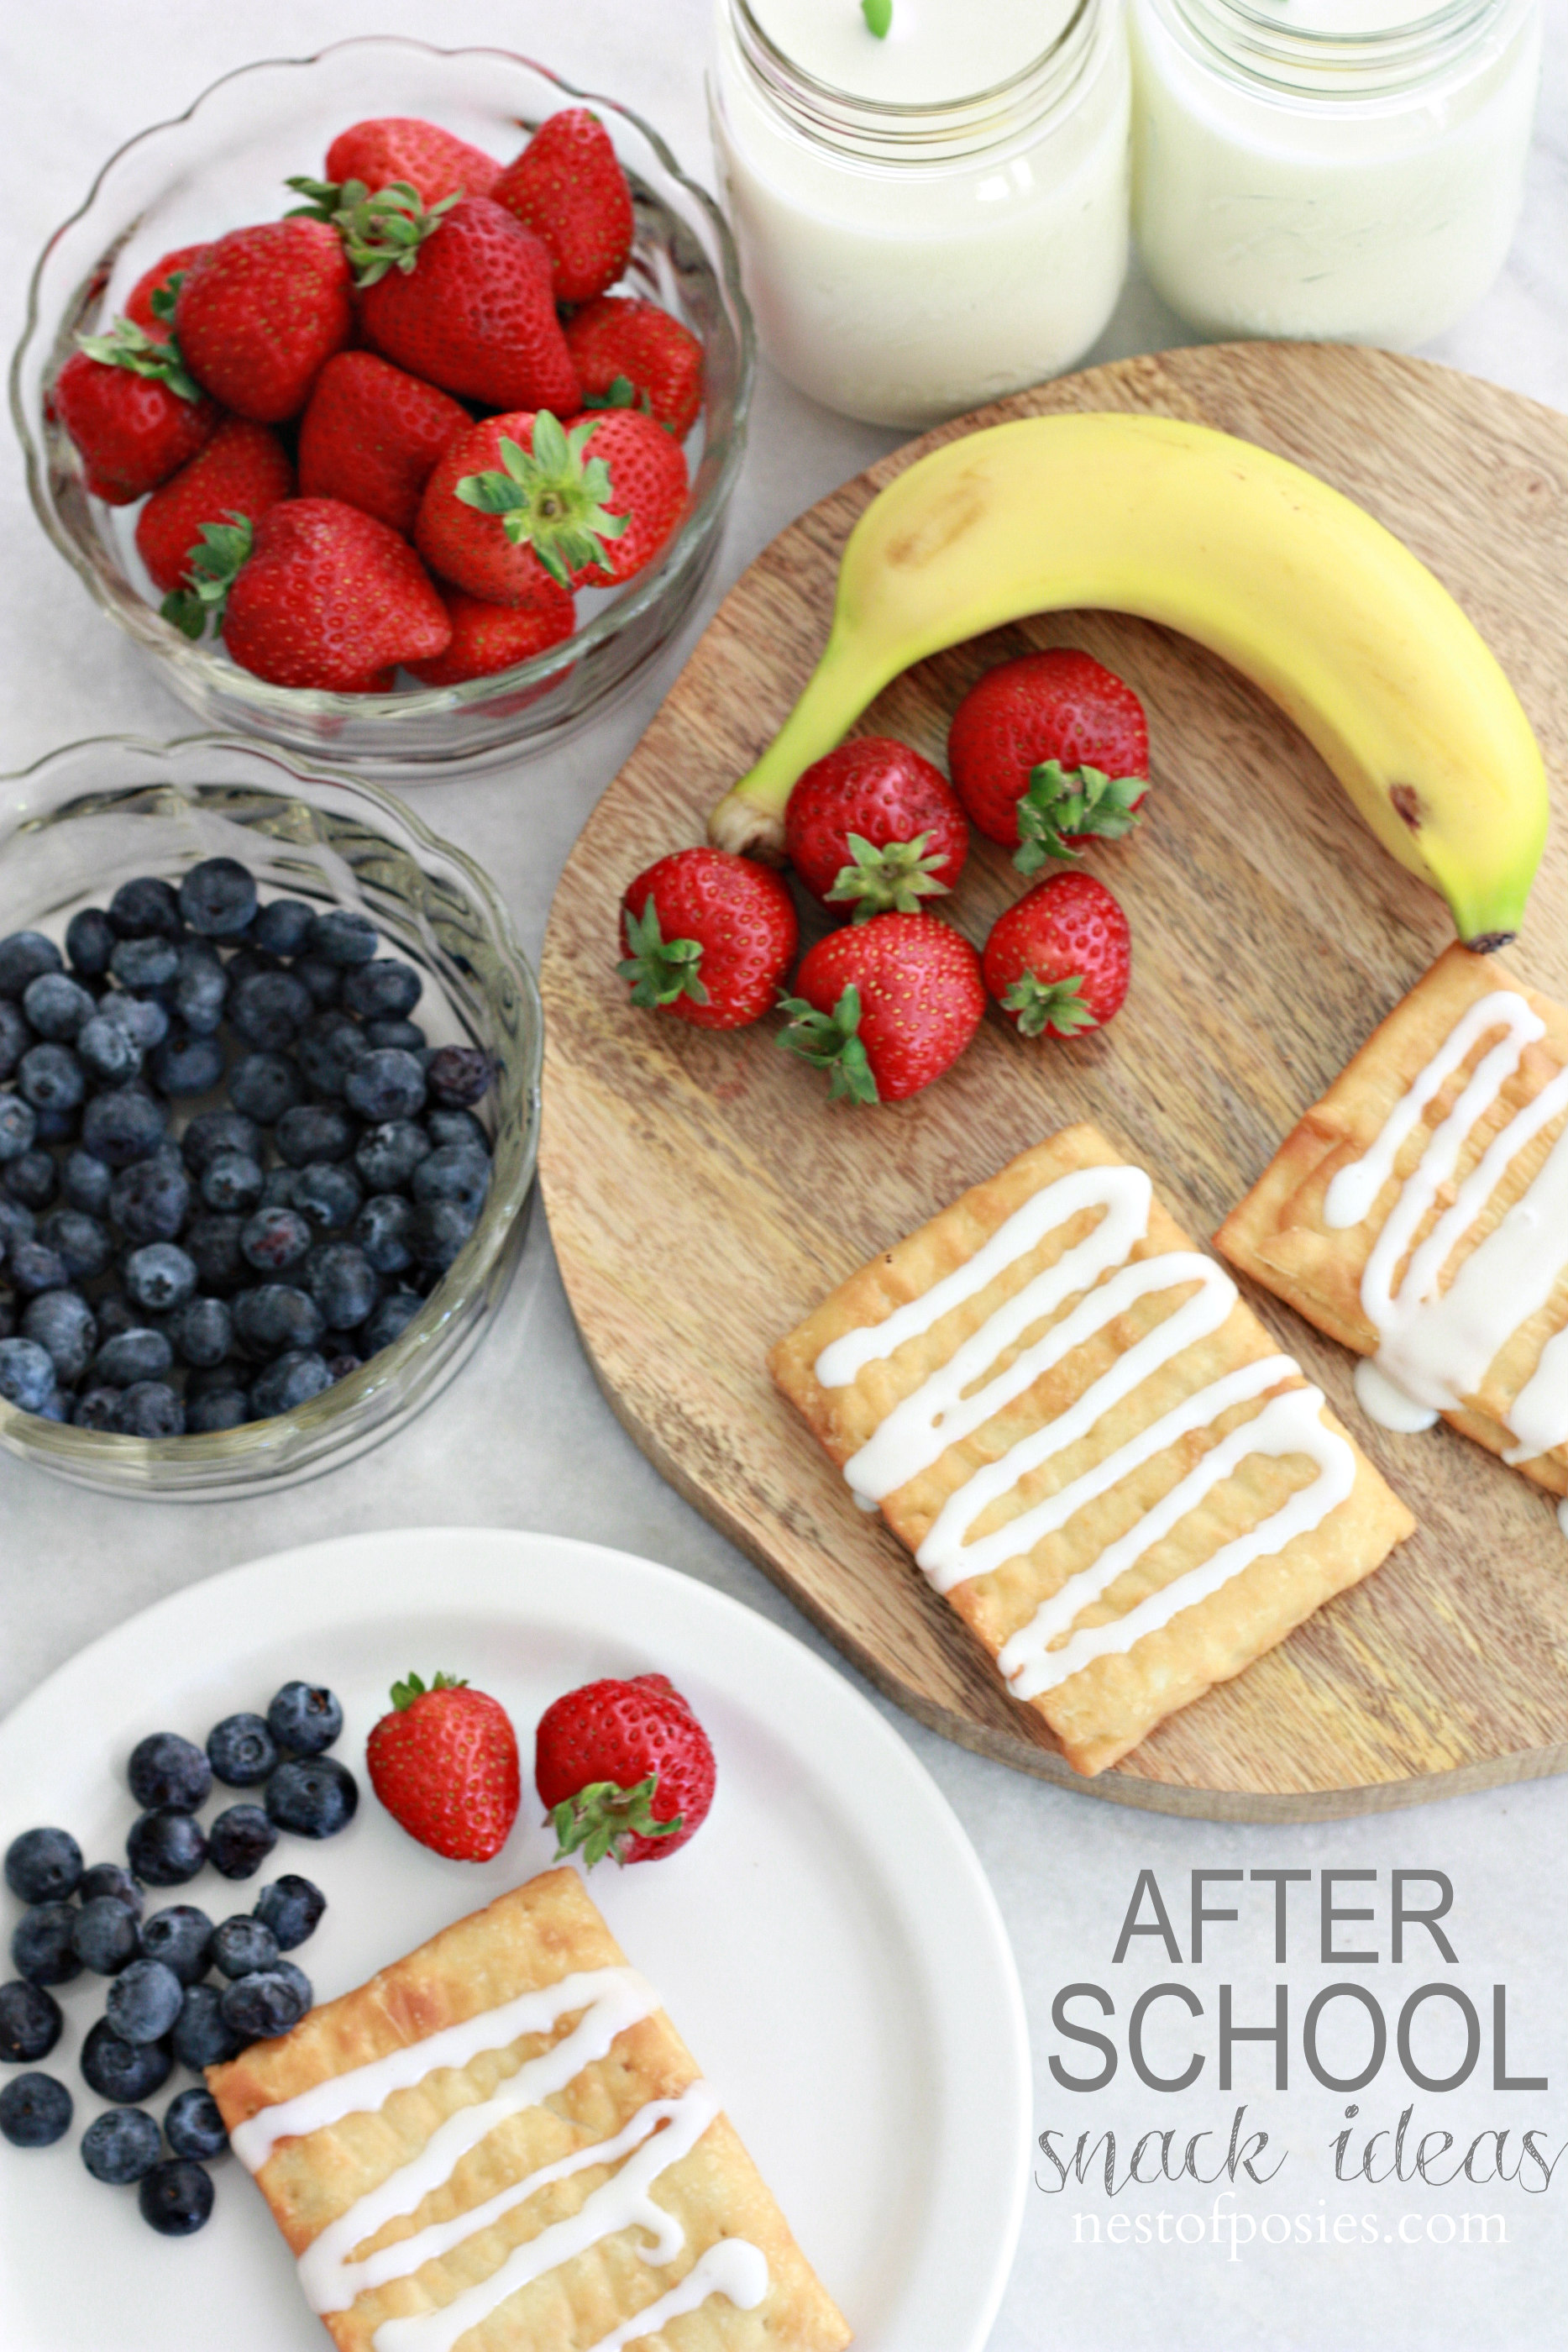 After School Snack Idea. George Mason Graduate Programs. Shaw University Admissions Devry Mba Program. Moving Companies In Norfolk Va. How Do You File Bankruptcy Drug Abuse Causes. Nursing Schools In Richmond Va. How To Prevent A Ddos Attack. Hyde Park Culinary Institute. Dmae Bitartrate Side Effects Do I Have Dsl